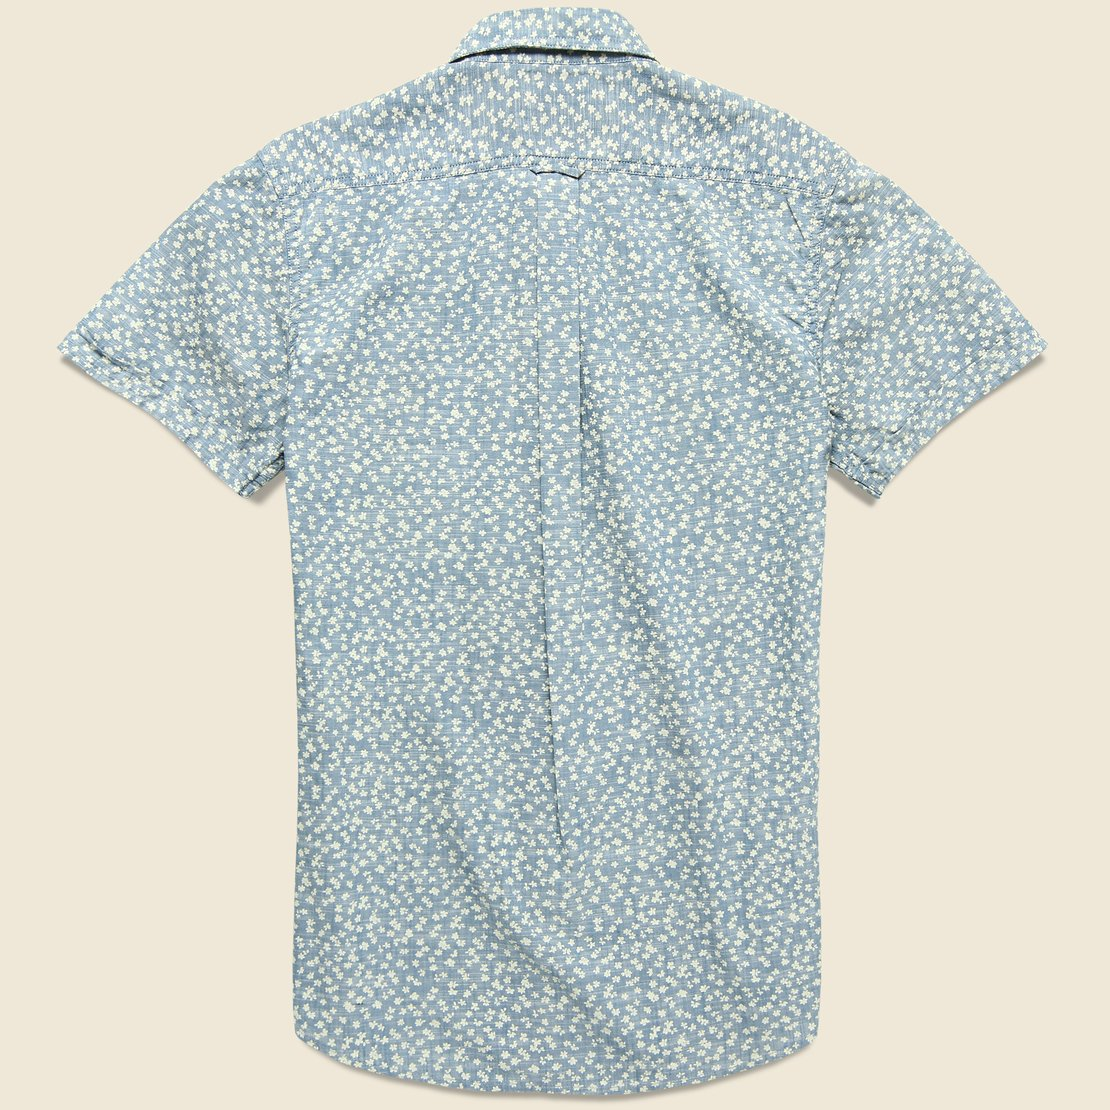 Drayton Printed Chambray Shirt - Aegean Blue